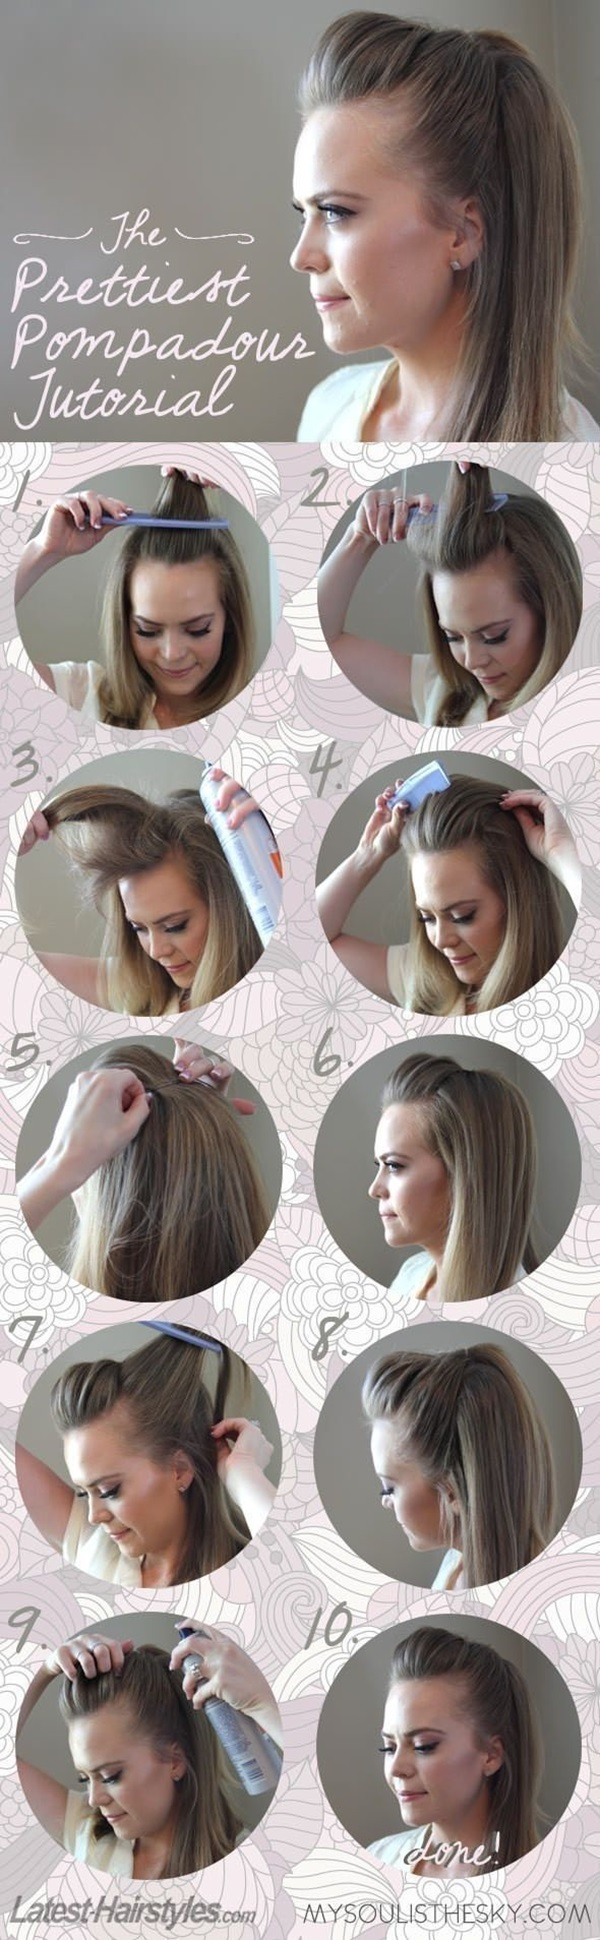 Simple Five Minute Hairstyles (24)